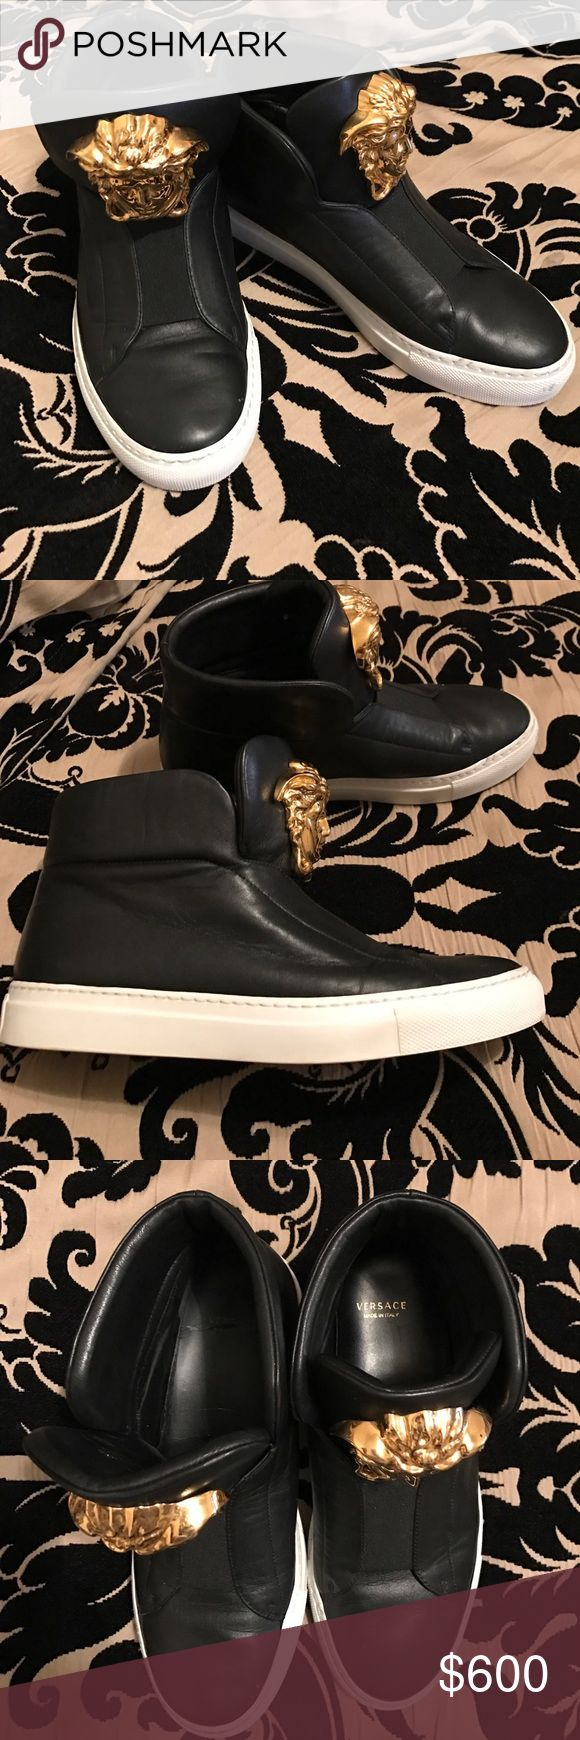 Versace Sneakers 💯 Very much loved, super comfy. Possibly can sale the matching belt as well if you wear a 28 waist... All items on my page are authentic. Size 36 but fits like a 6.5 Versace Shoes Sneakers